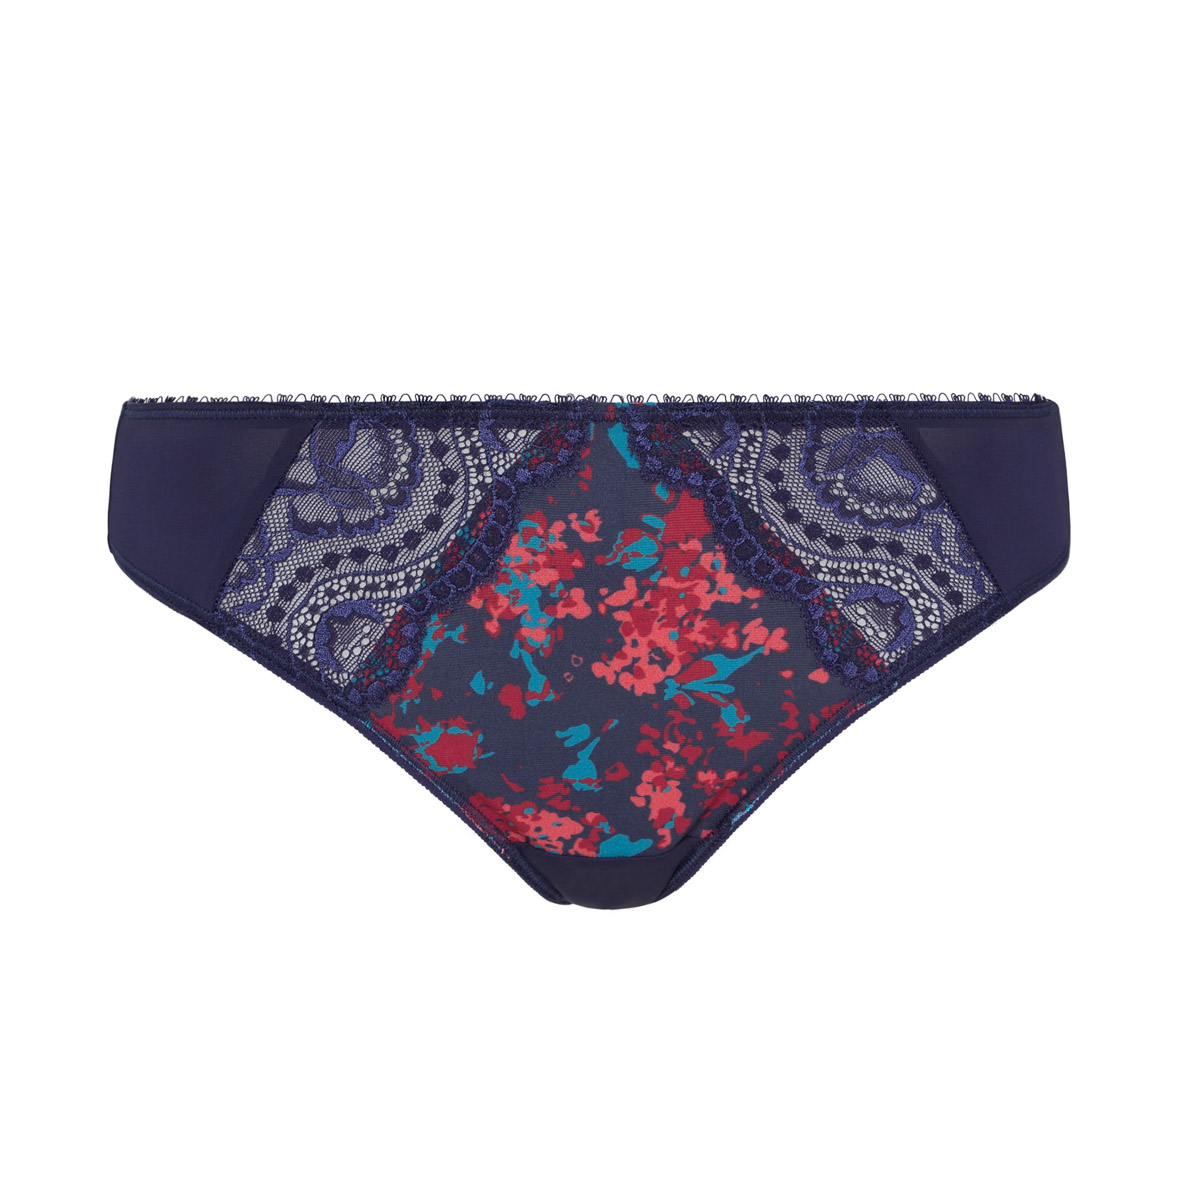 Mini knickers in blue garden print Flower Elegance Micro, , PLAYTEX